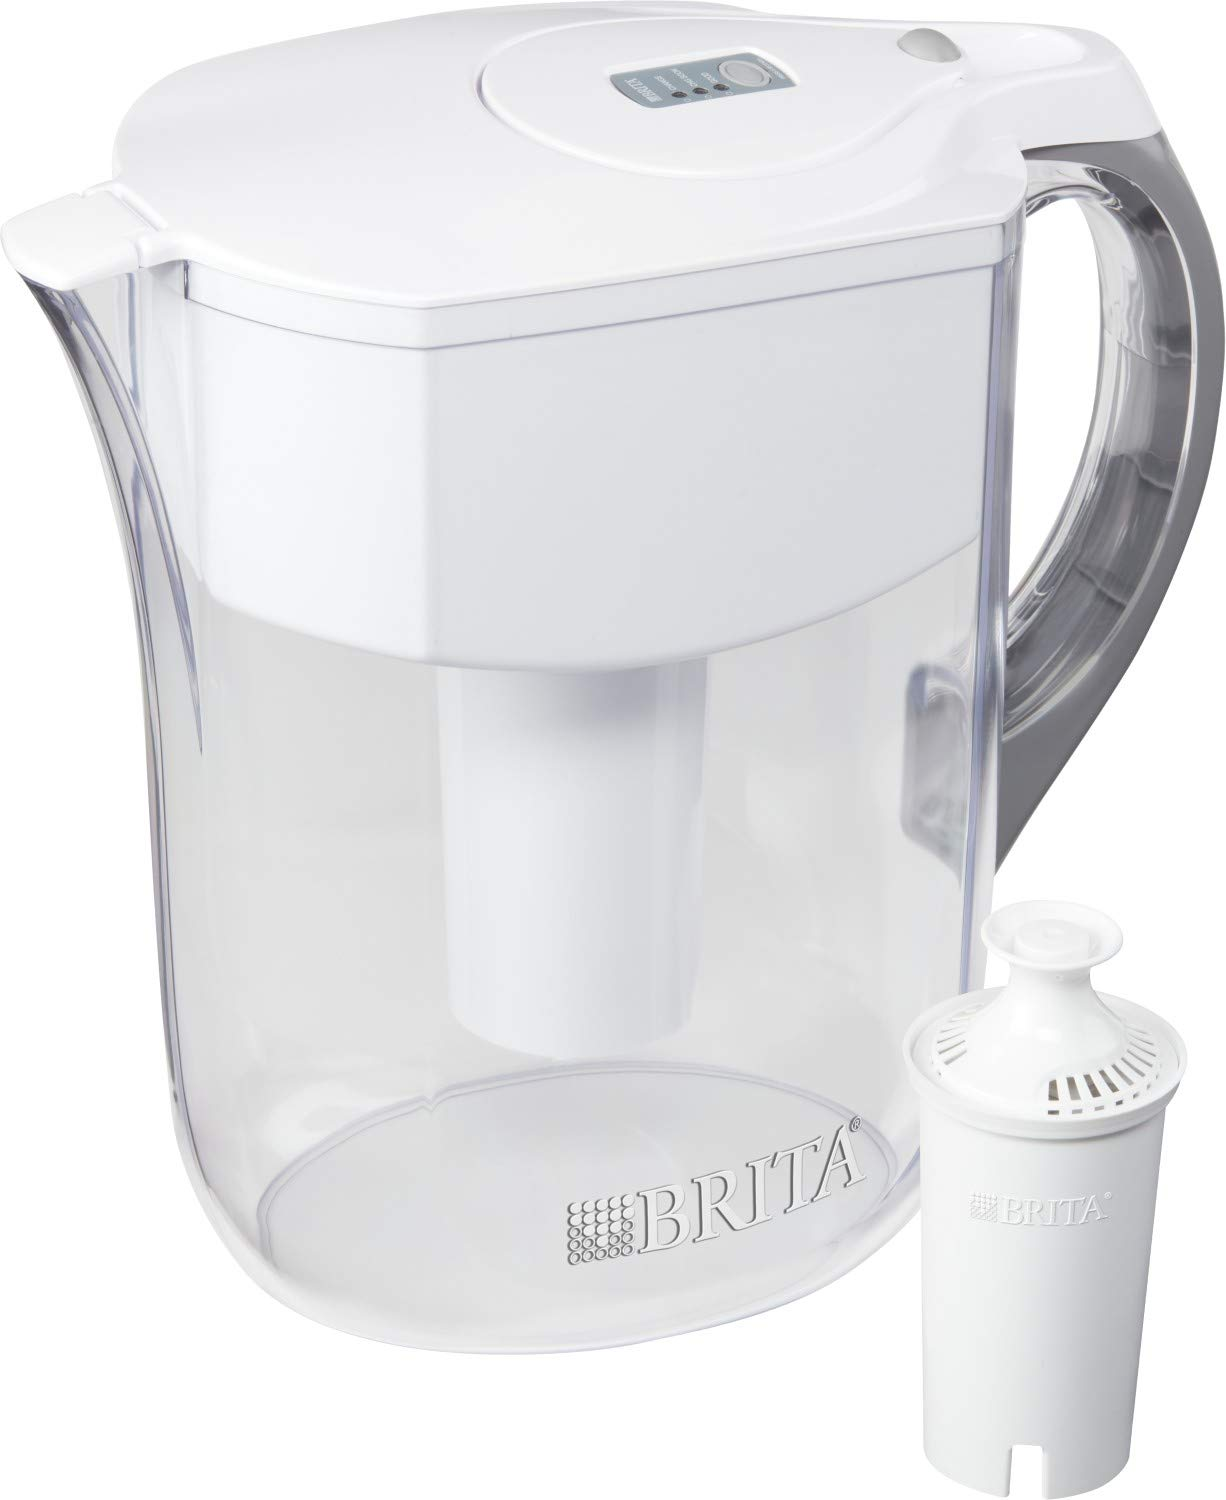 Brita Water Filter Pitchers, Large 10 Cup, White